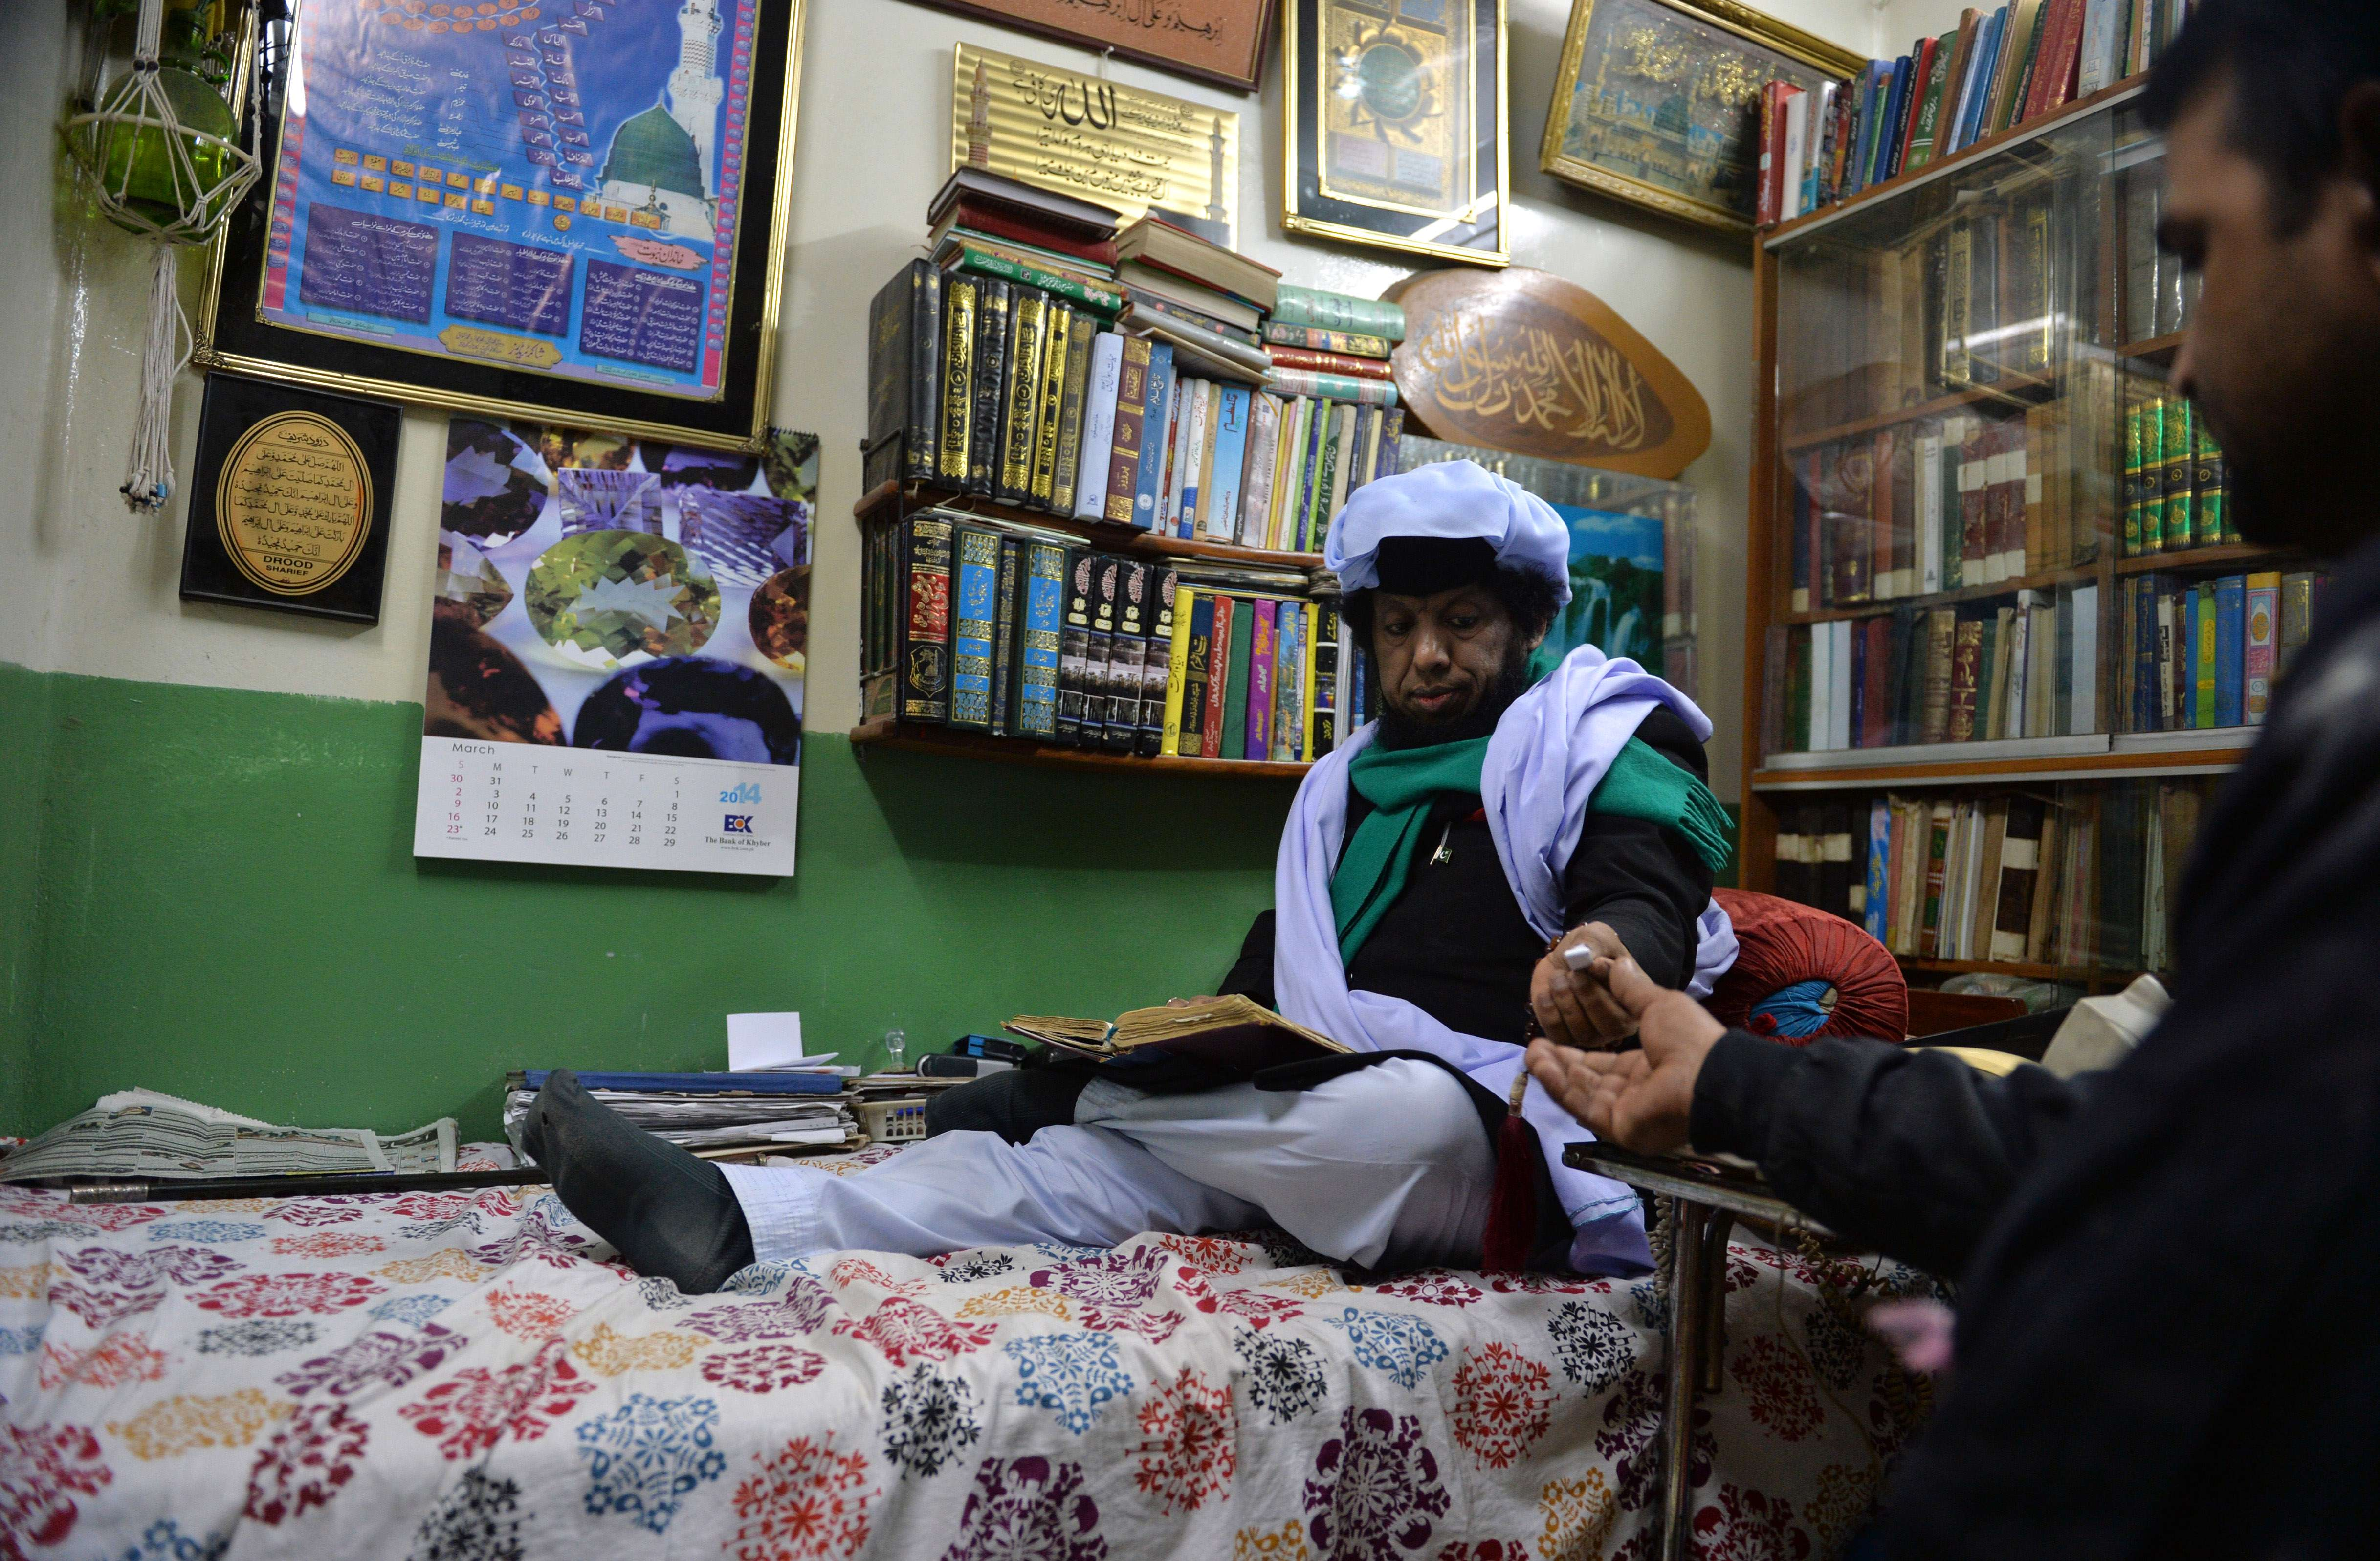 This photograph taken on March 2, 2014 shows a Pakistani Pir (Muslim saint) Syed Izhar Bokhari (L) giving a taweez or an amulet with written verses from the Koran to a devotee at his astaana (Sufi abode) in Rawalpindi, with a belief that it will resolve his problems. From winning the heart of your beloved to getting a promotion at work, Pakistan's black magicians say there is nothing they can't help you achieve – for a humble donation  (AFP Photo / Aamir Qureshi)